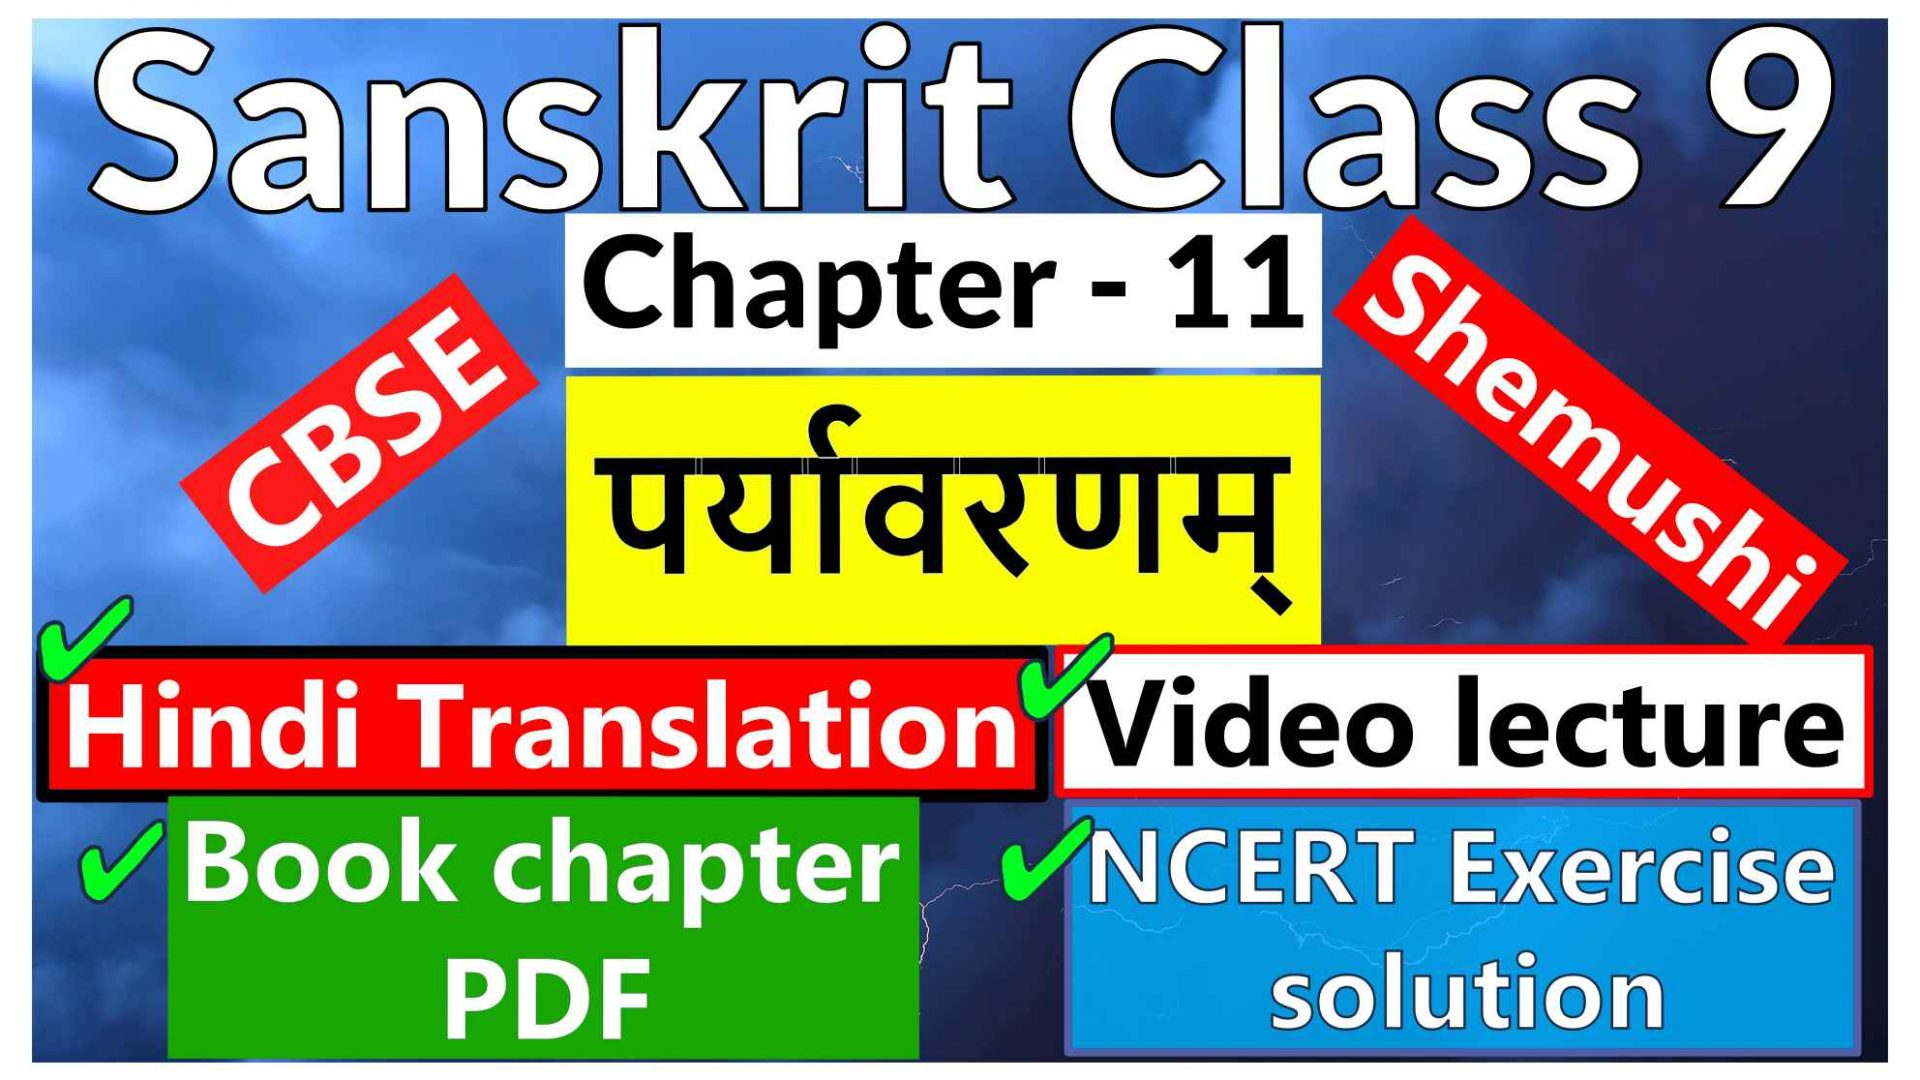 Sanskrit Class 9-Chapter 11 पर्यावरणम् - Hindi Translation, Video lecture, NCERT Exercise solution (Question-Answer), Book chapter PDF